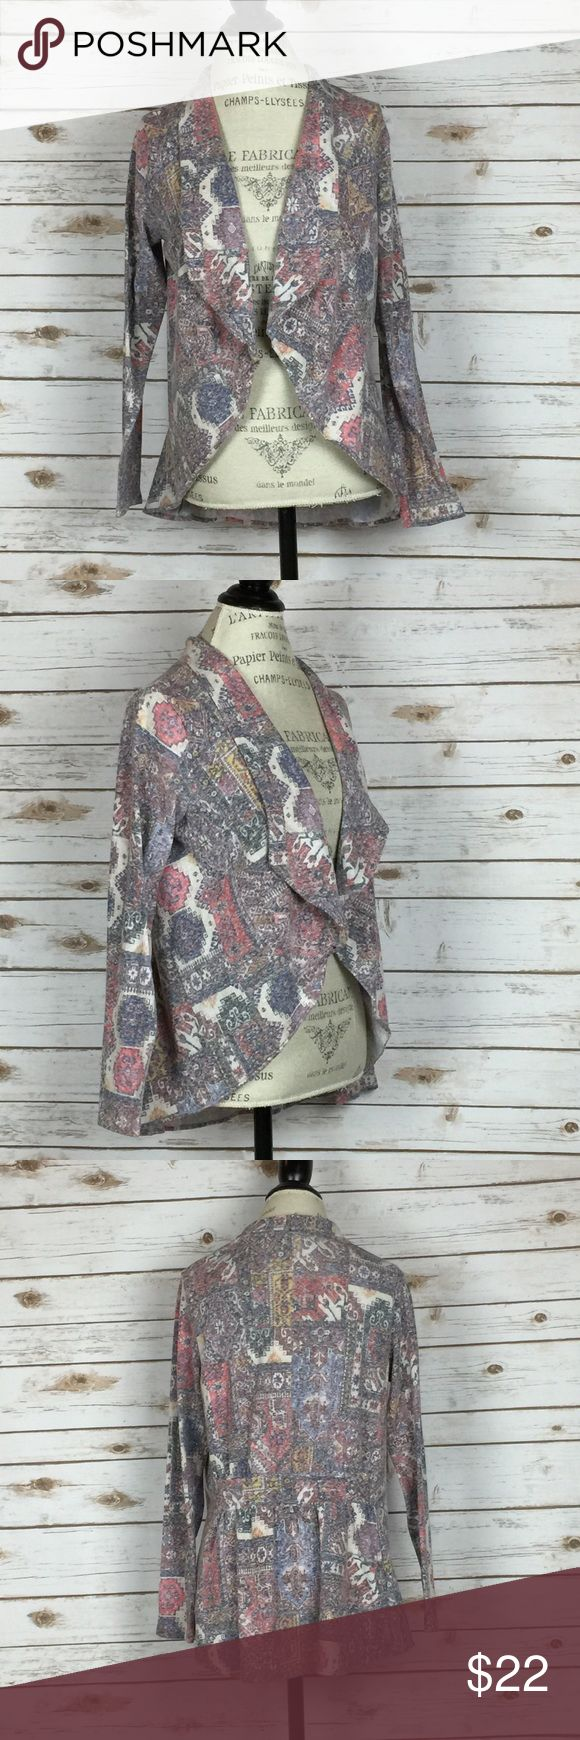 ANTHROPOLOGIE aztec print cardigan Anthropologie brand Sparrow aztec print cardigan.  Muted colors- cream, marroon, gray.  Good used condition- no outright flaws but does have minor wash wear.  Smoke free and pet free home. Anthropologie Sweaters Cardigans